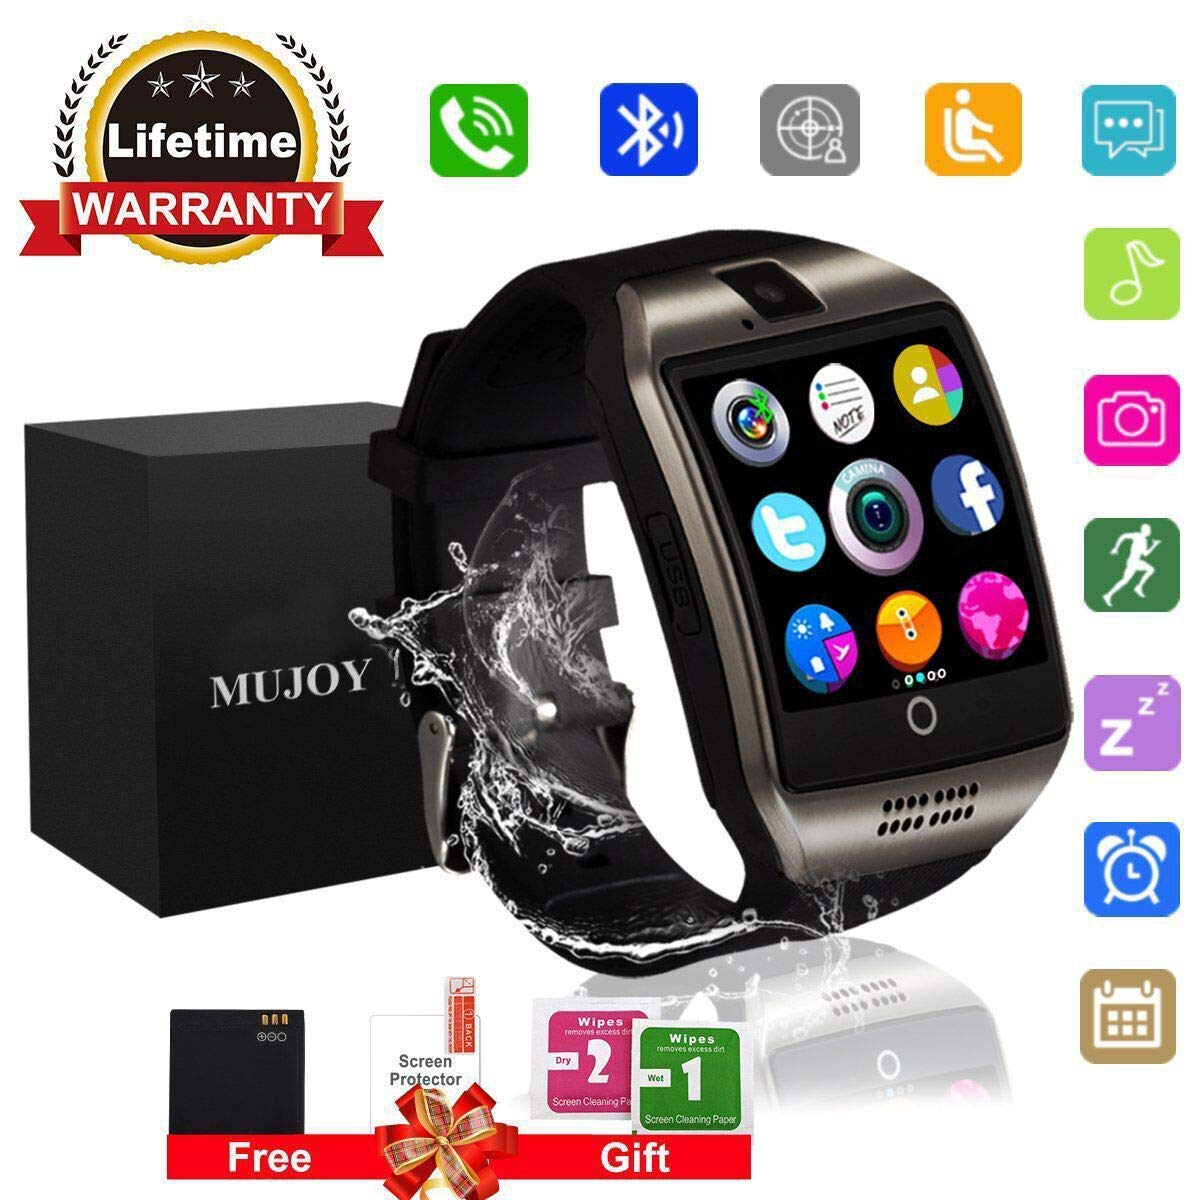 MUJOY Smart Watch for Android Phones, Bluetooth Smartwatch Touchscreen with Camera, Smart Watches Waterproof Smart Wrist Watch Phone